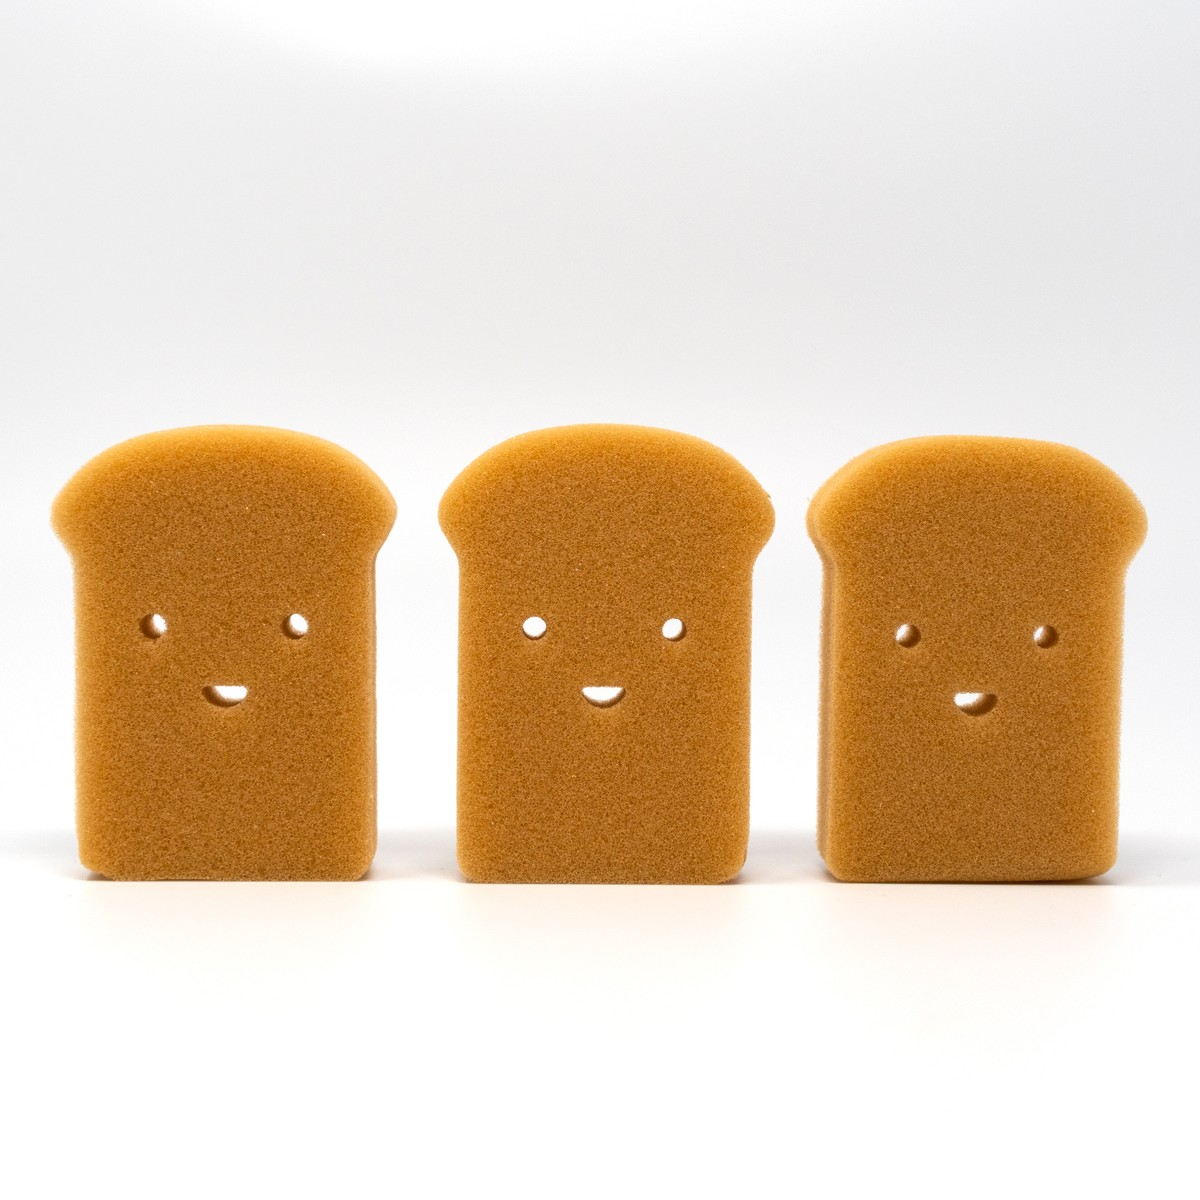 Photo of Smiley Toast Sponges: Set of Three